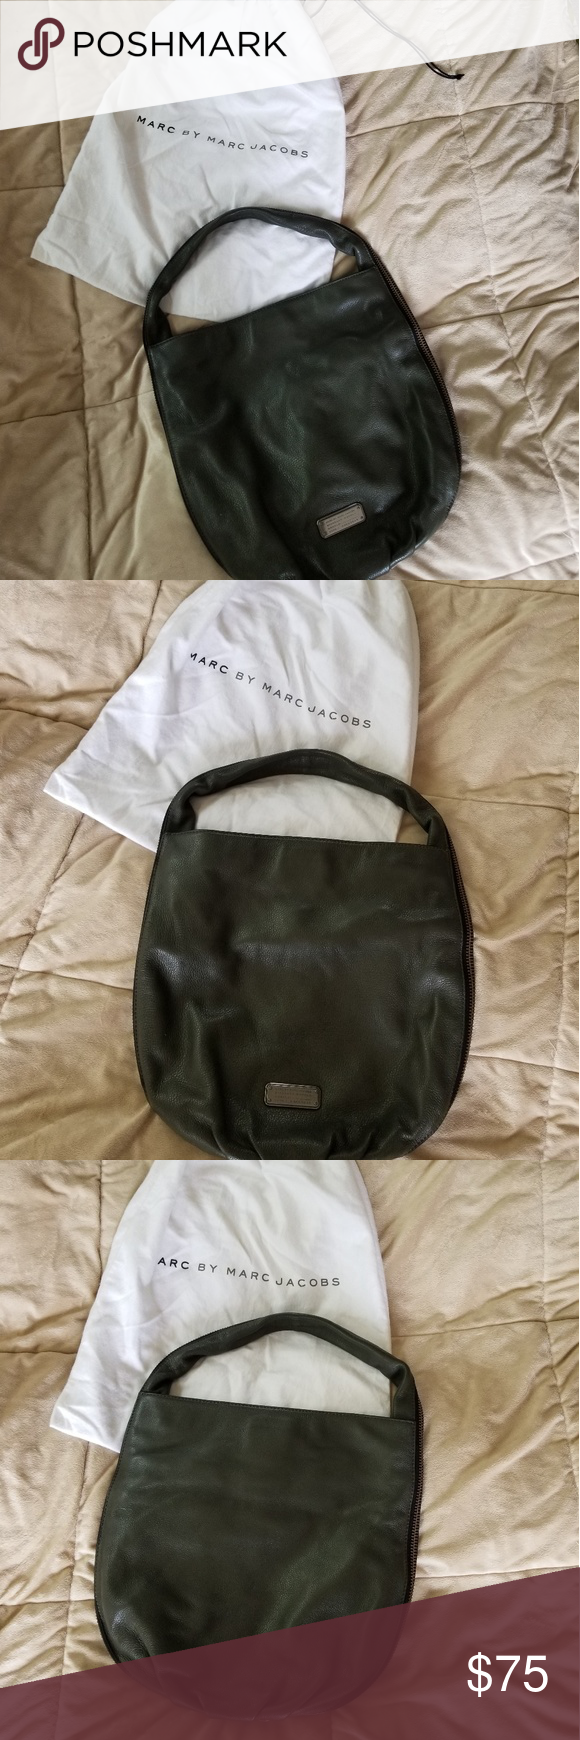 5b8d750610 Authentic Marc Jacob's workwear bag Beautiful handbag. Green soft leather.  Awesome for work,